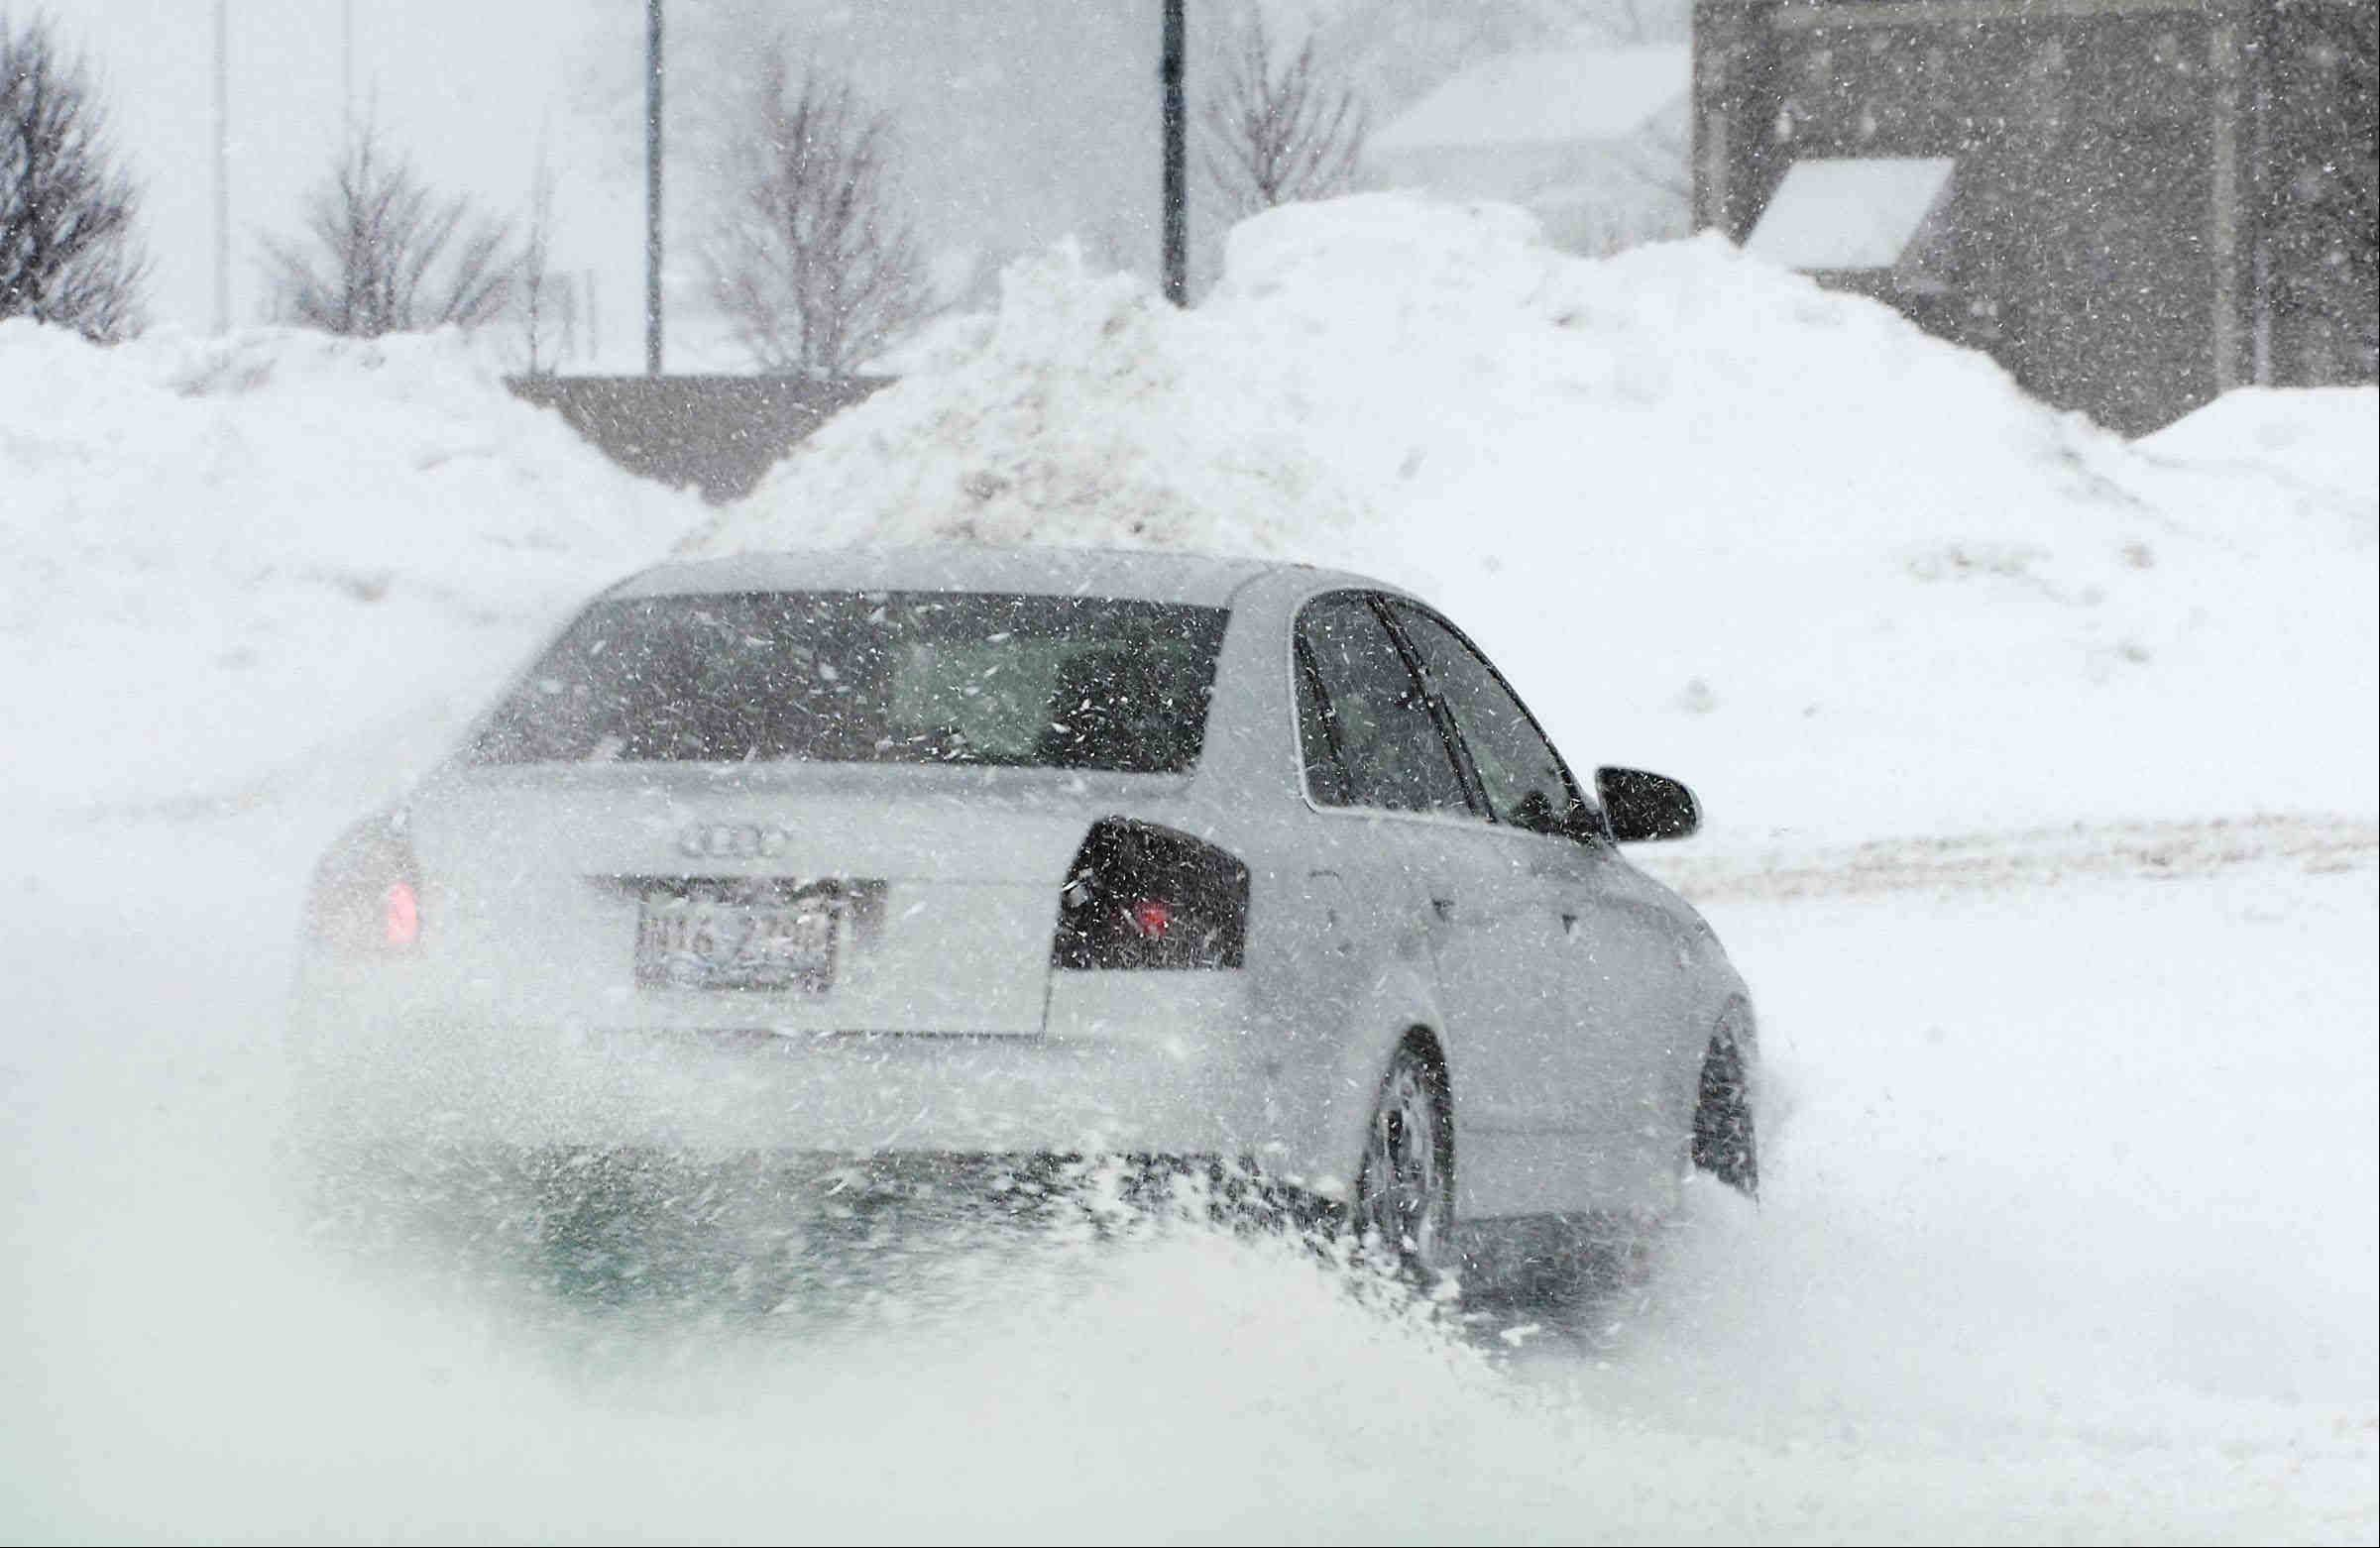 In Algonquin, this car spinning in Tuesday's deep snow was a victim of the latest snowstorm.